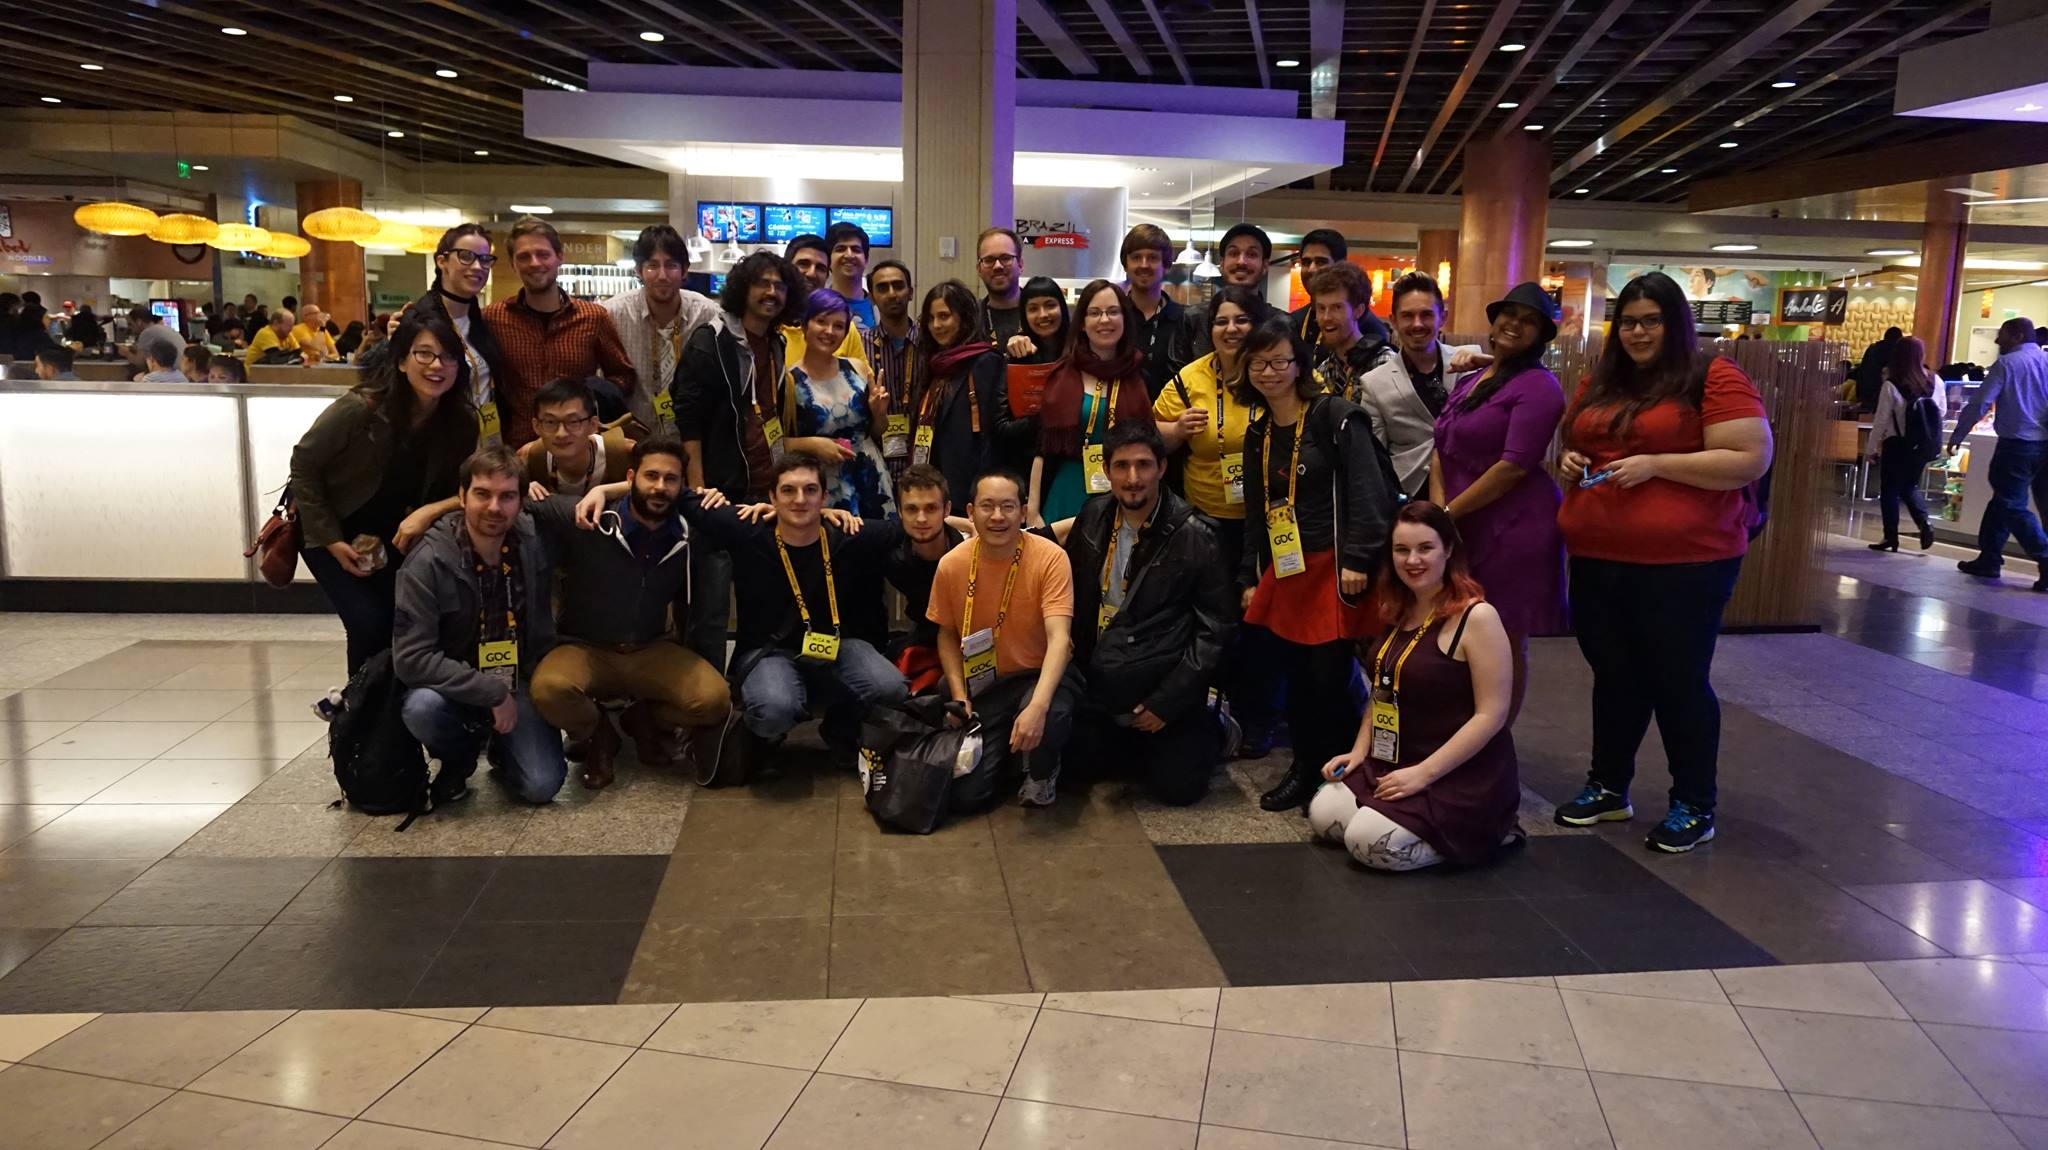 The GDC 2015 International Ambassadors